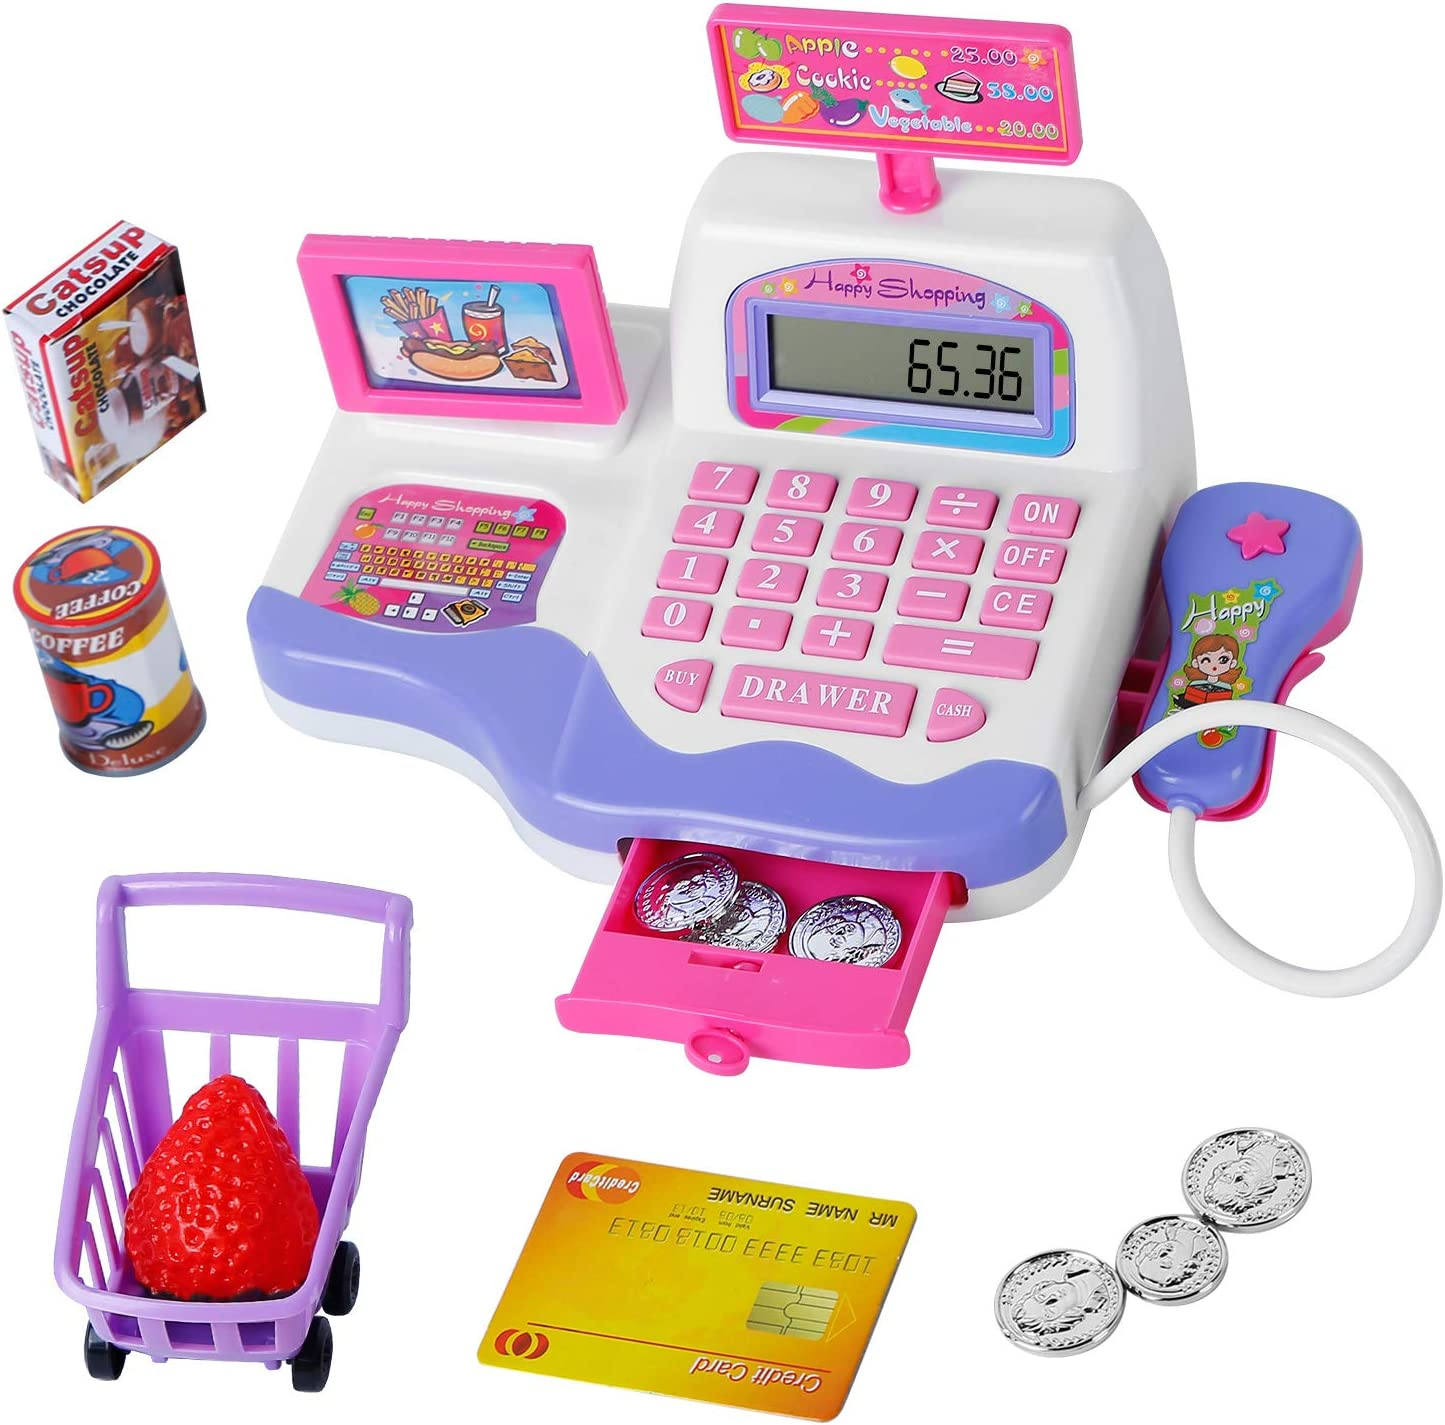 Tudaymol Children's Cash Register Toys with calculators, scanners, Food, Pretending Credit Cards and Shopping carts, Cash Register for Kids can Bring More Fun to Children. Learning, Role-Playin。